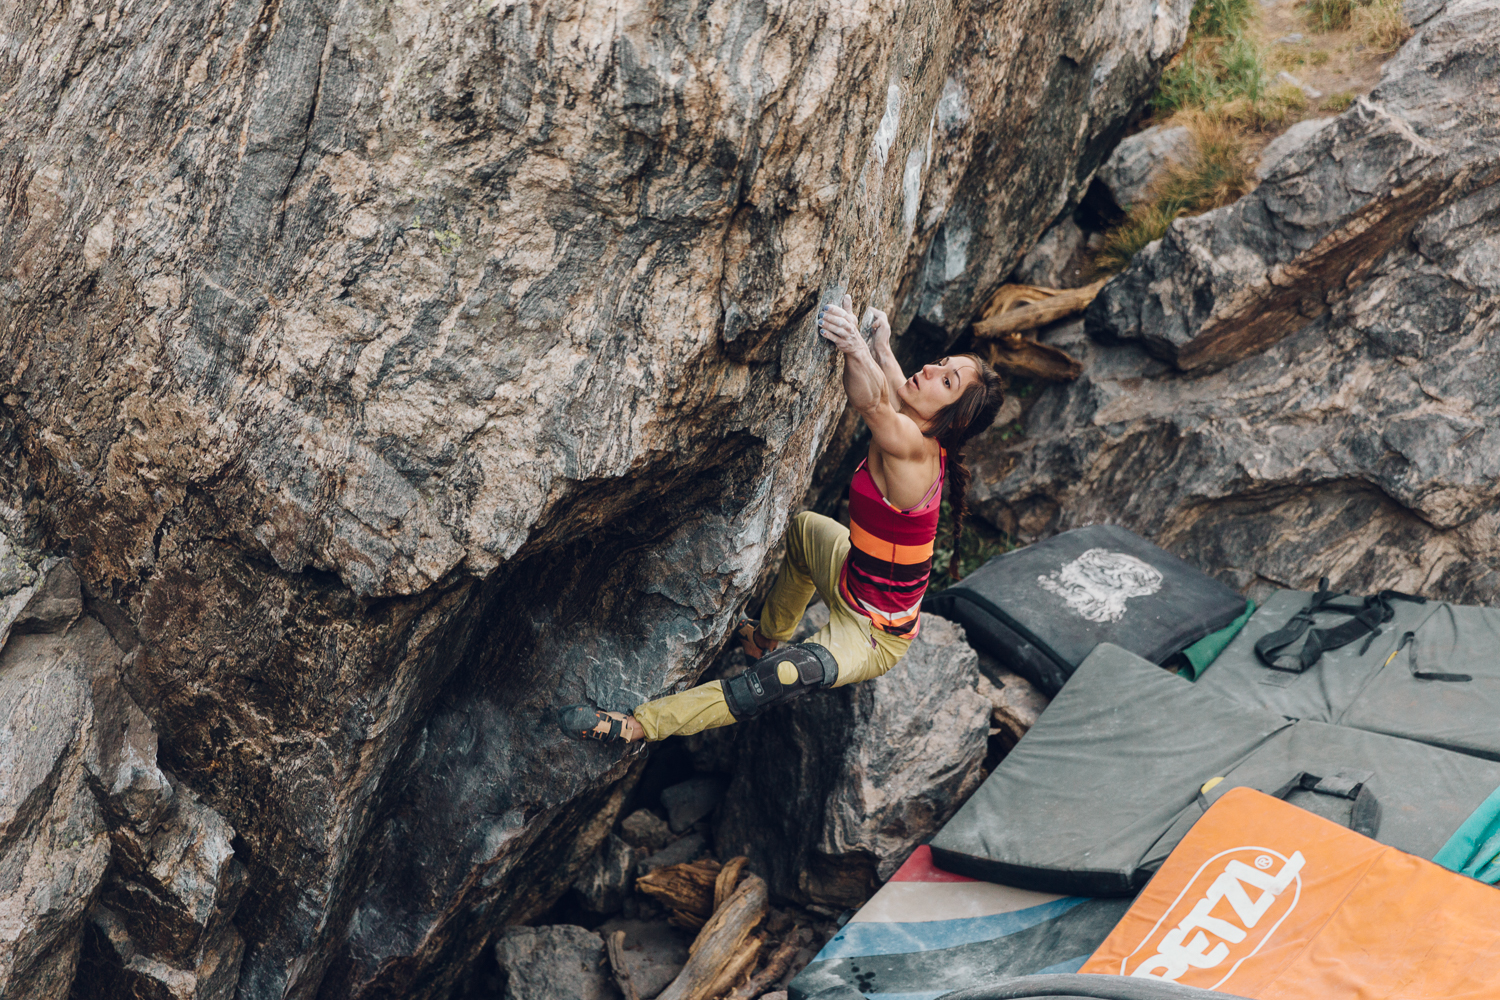 Alex Puccio, PETZL and Scarpa athlete,sending a v13 just twelve weeks out of surgery for her ACL & MCL. Photo by Michael Lim Photography.